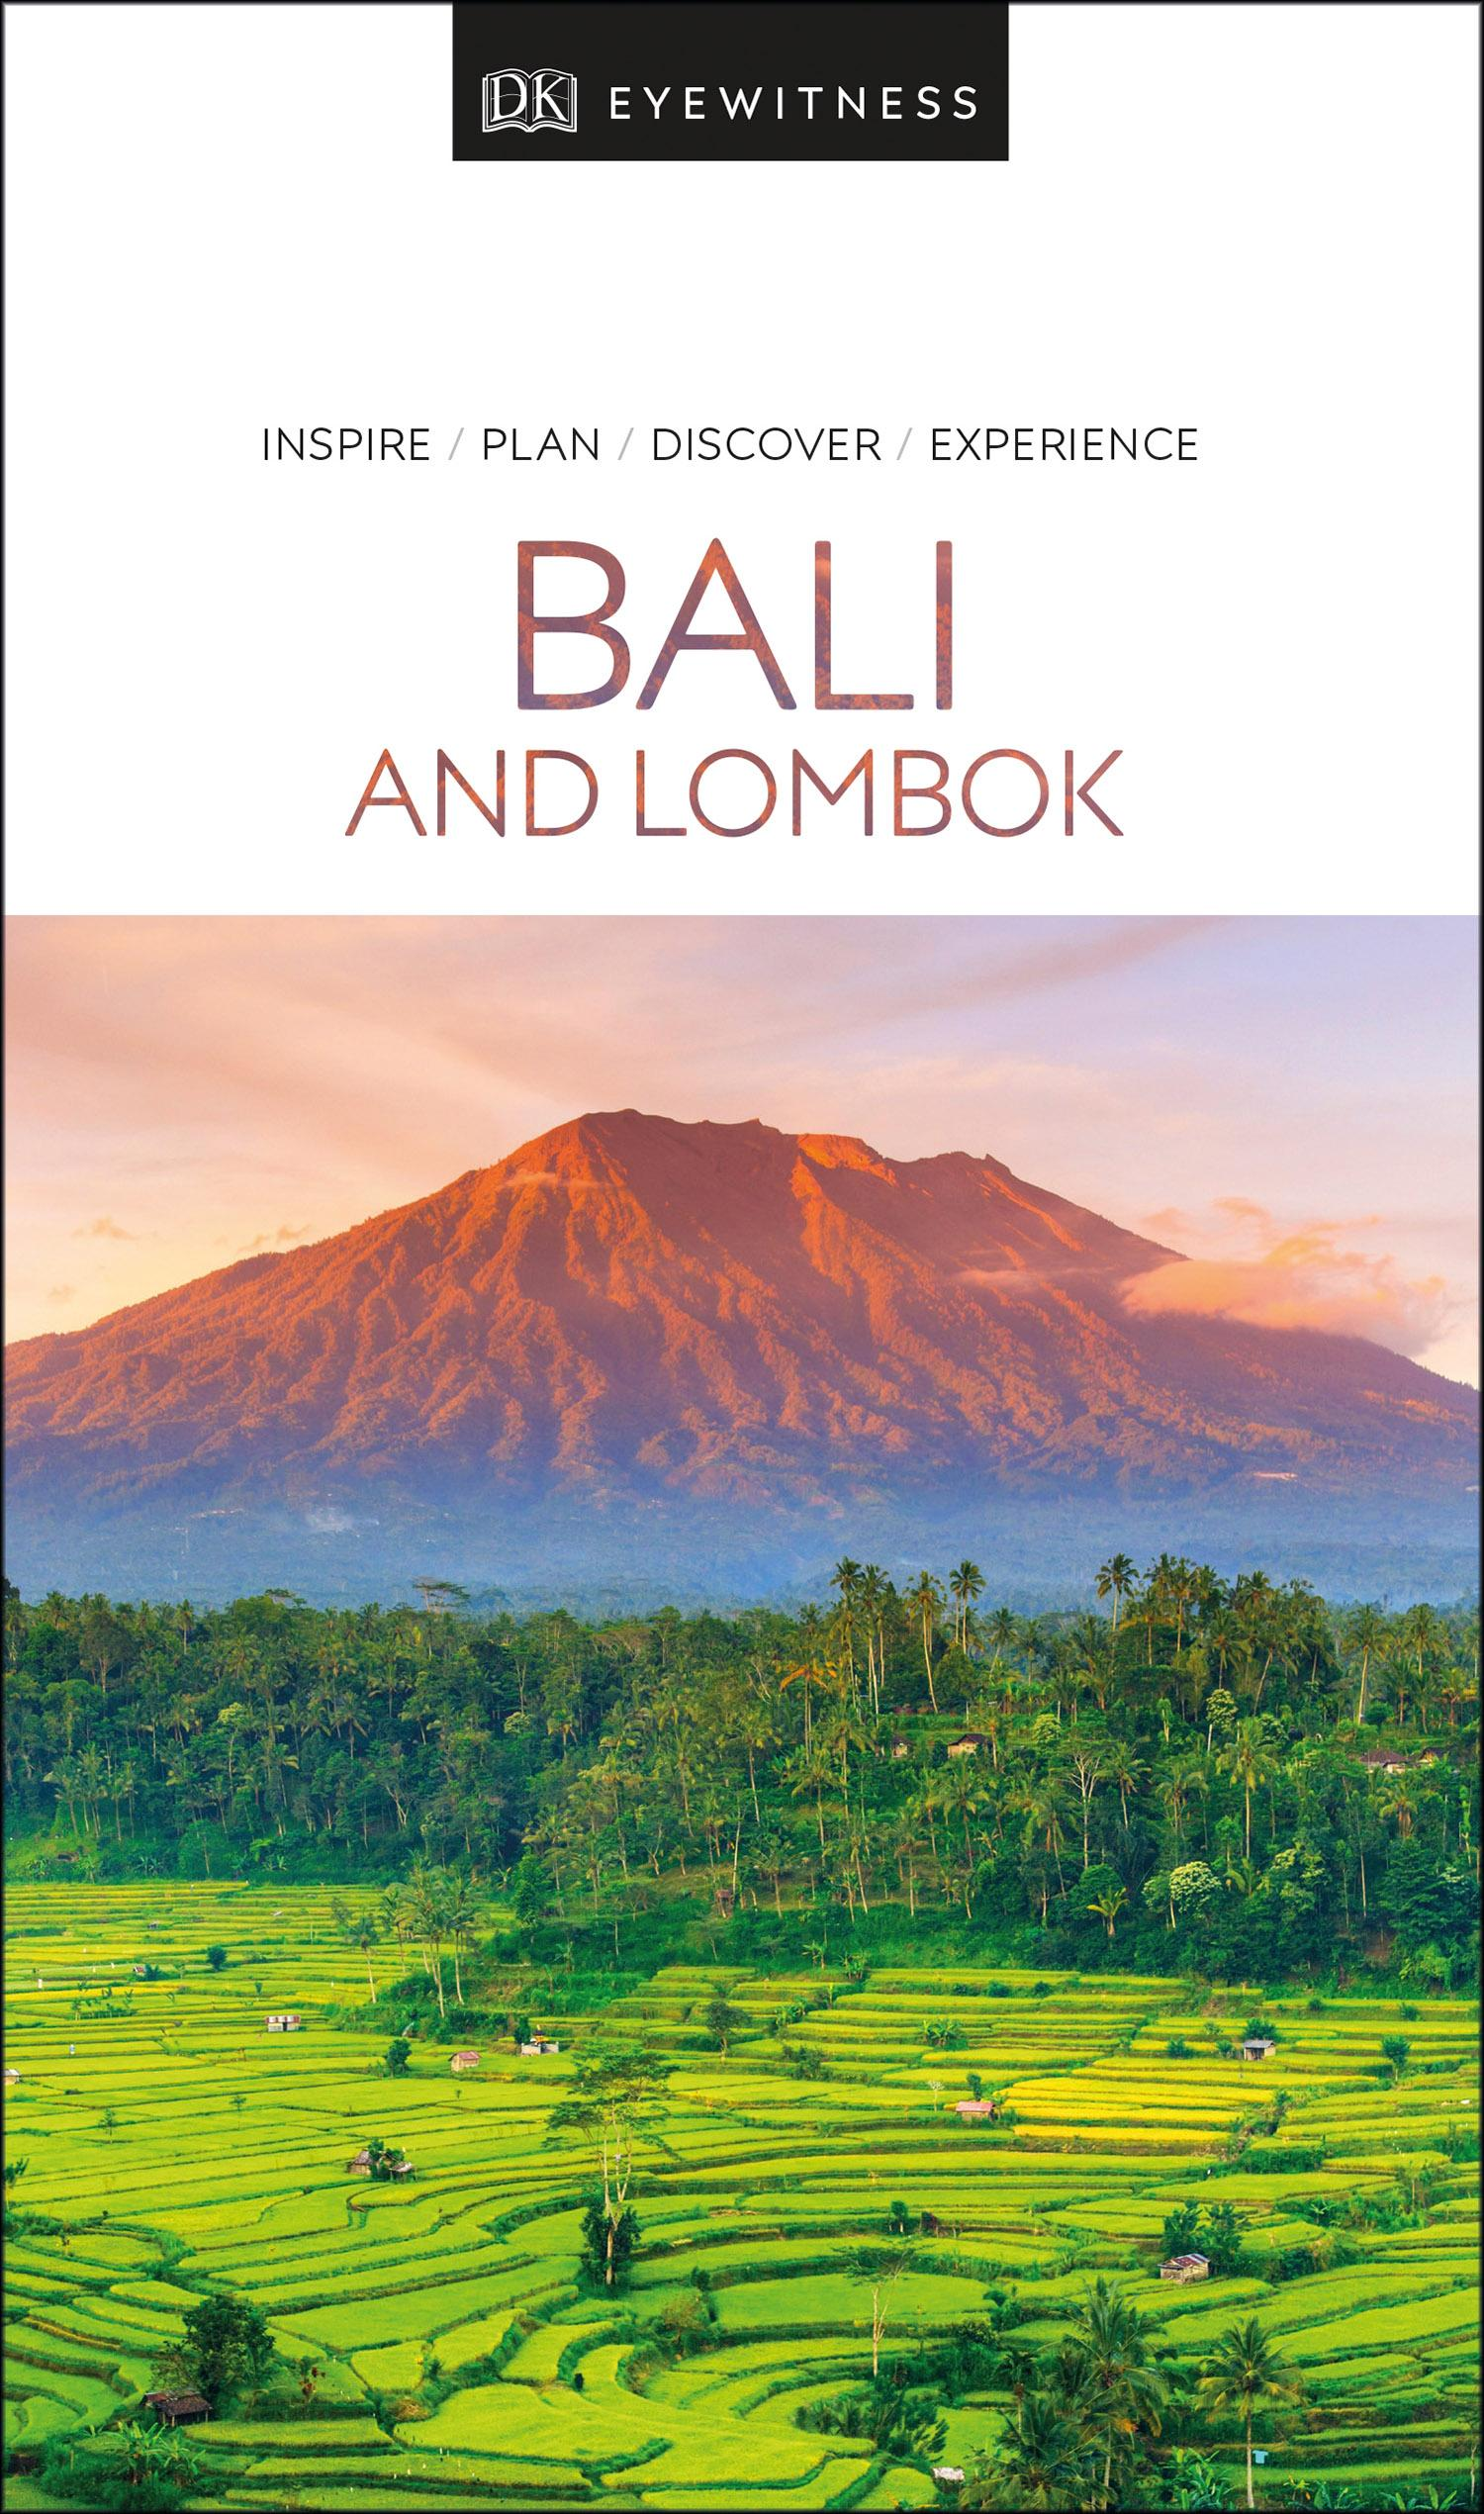 DK Eyewitness Travel Guide Bali and Lombok by Unknown Author